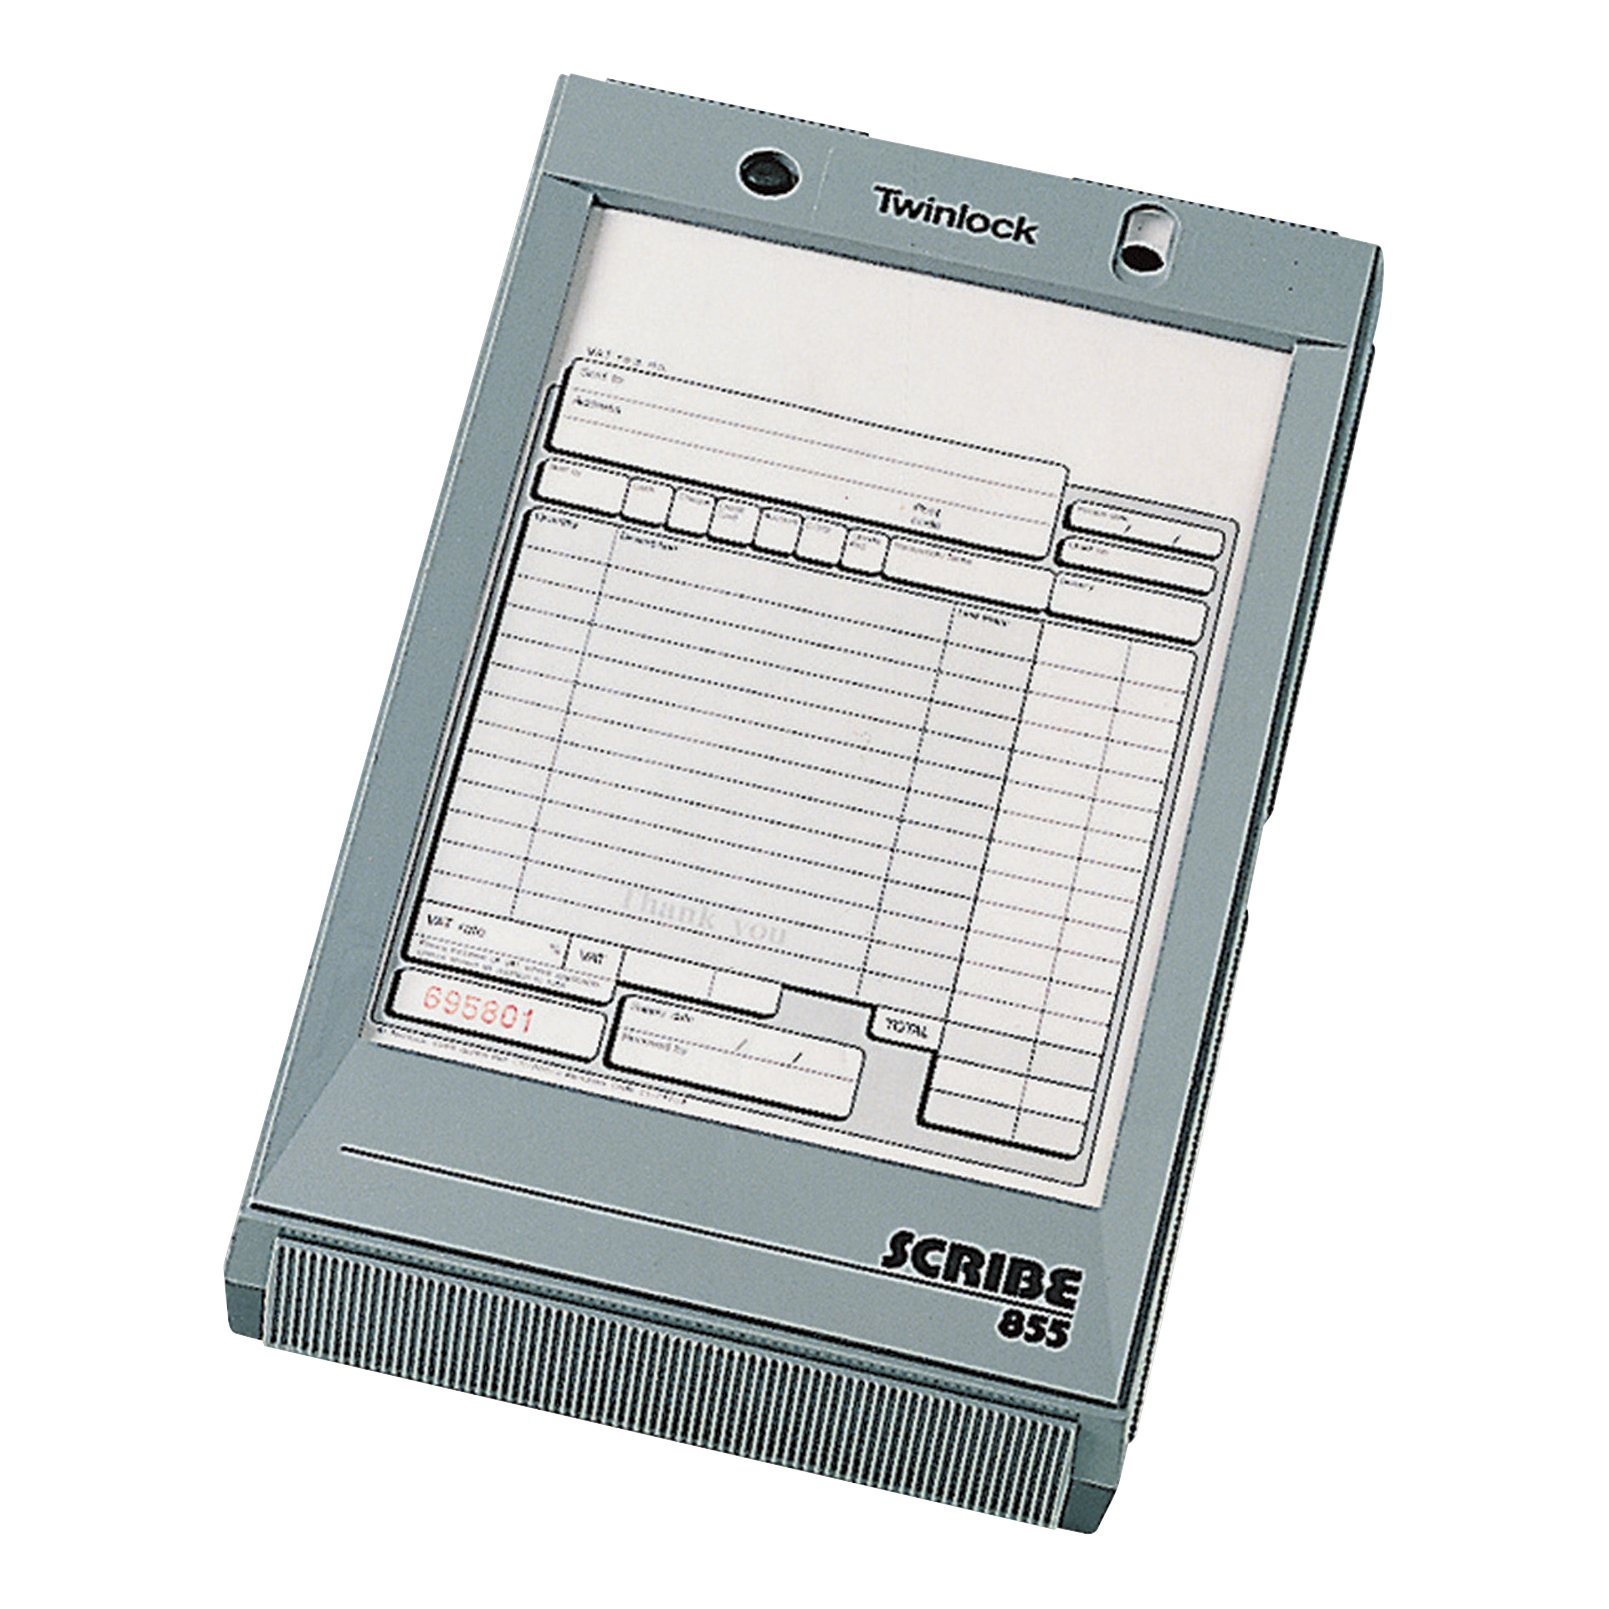 Twinlock Scribe 855 Scribe Register 264x161mm for Business Forms Ref 71011